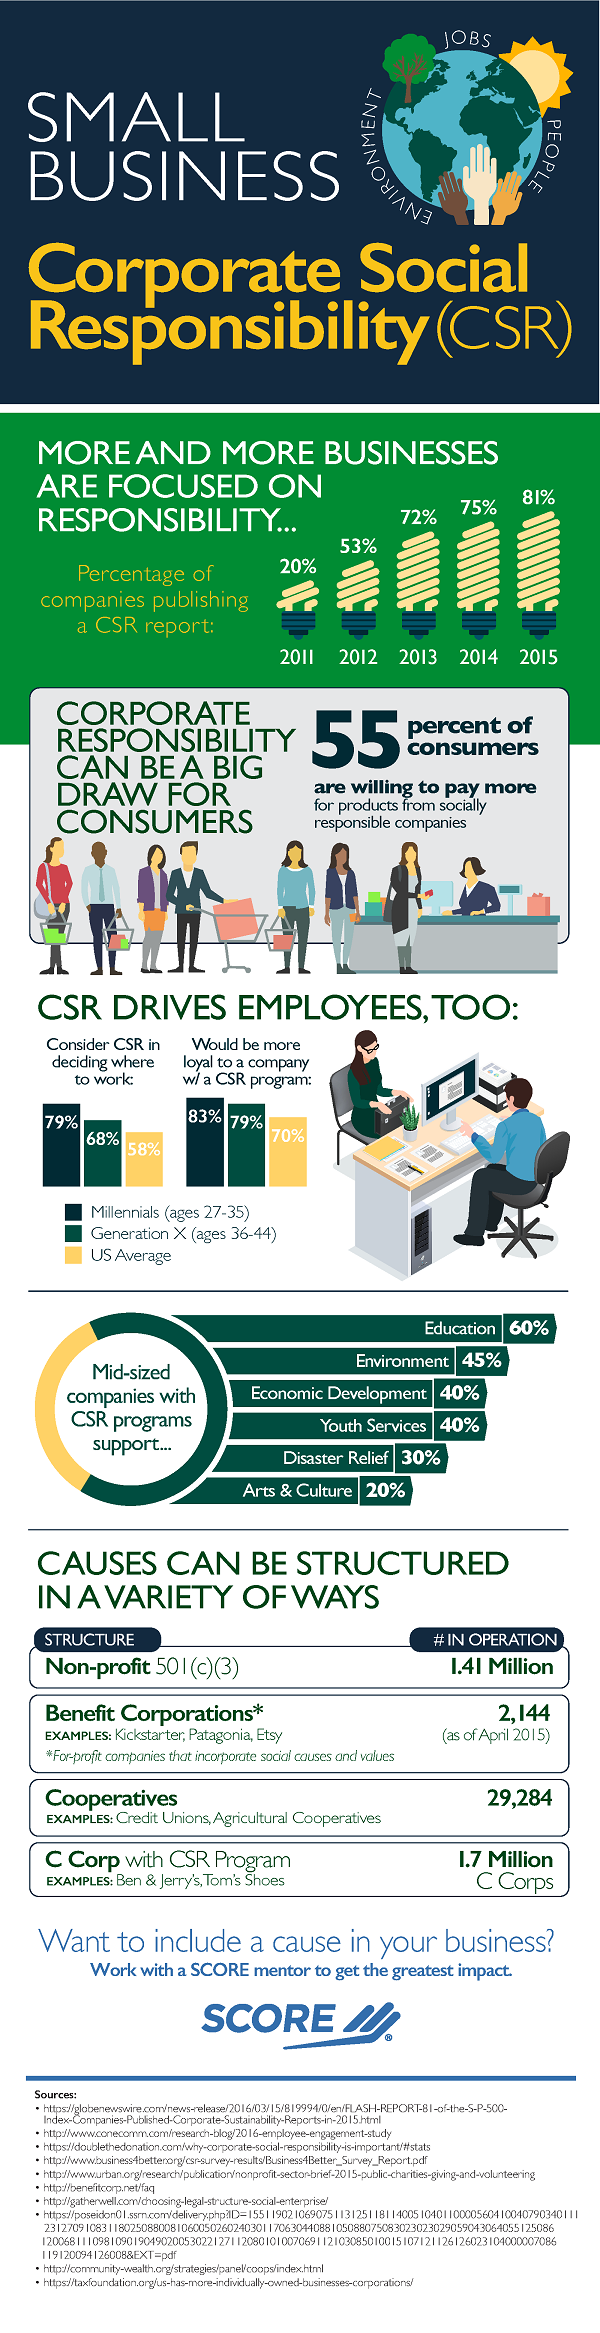 Infographic: Small Business Corporate Social Responsibility (CSR)